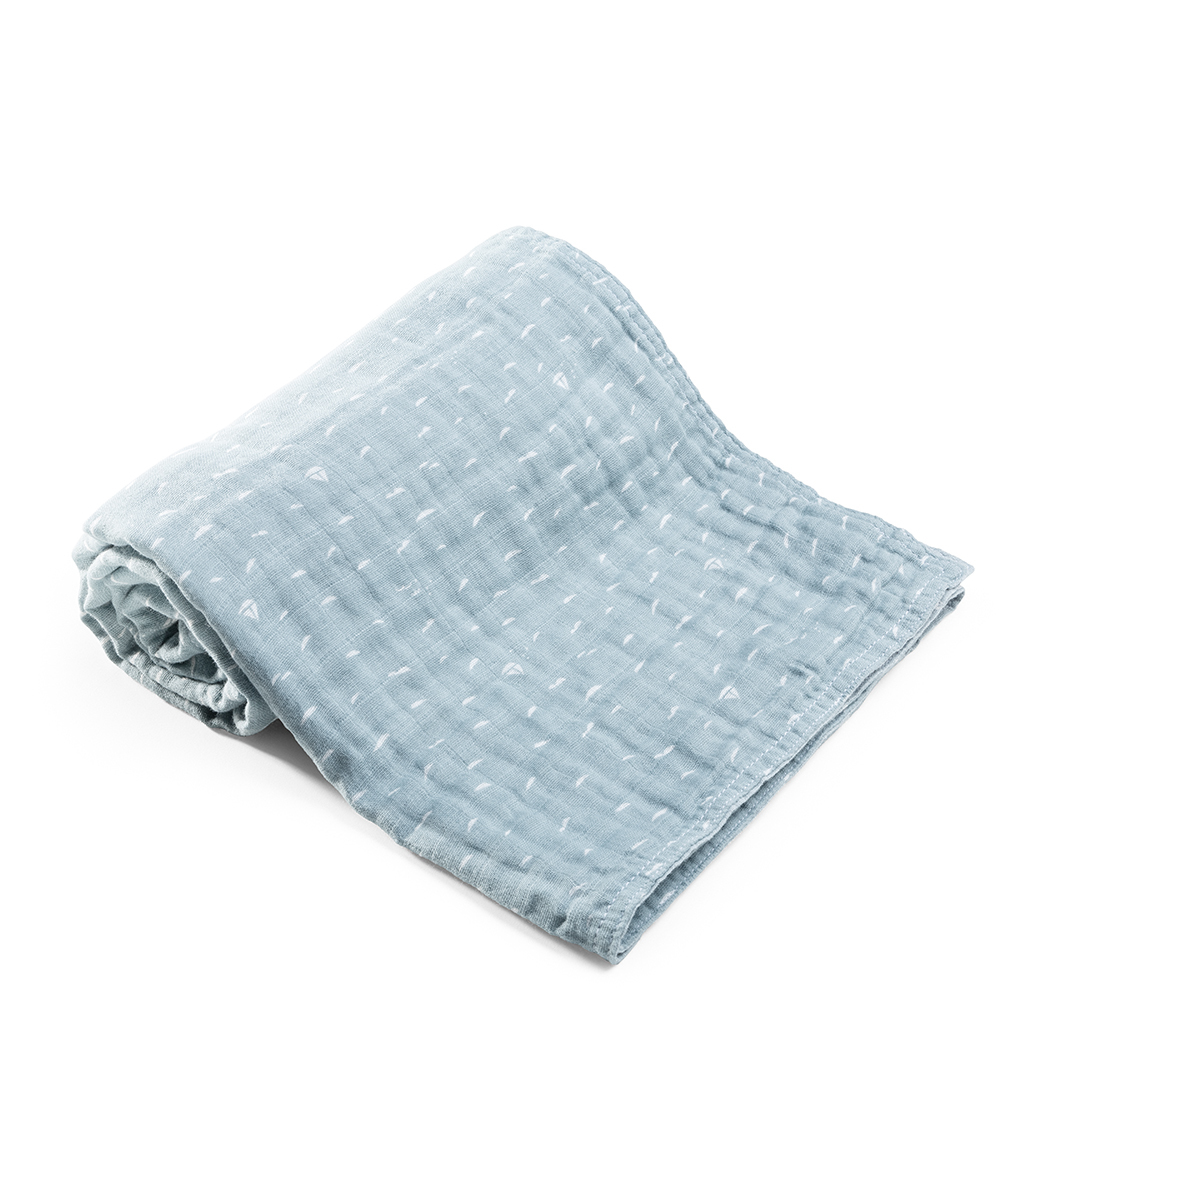 Blanket, Muslin Cotton, Slate Blue Sea